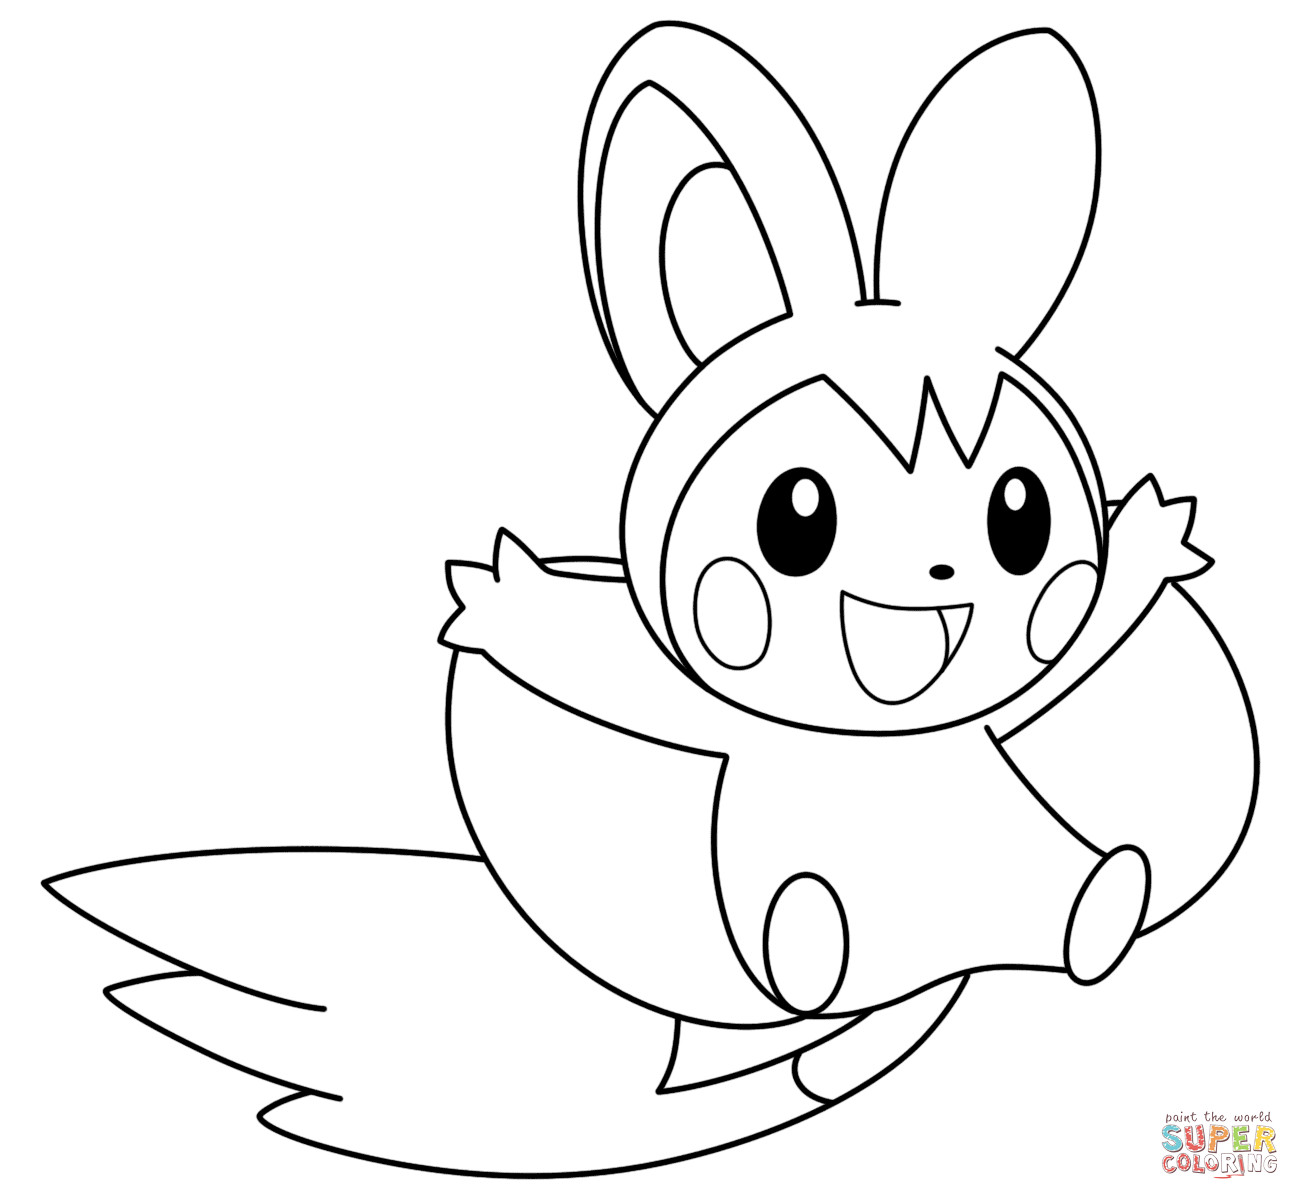 1300x1200 Pokemon Diamond Pearl Coloring Pages Fair Characters